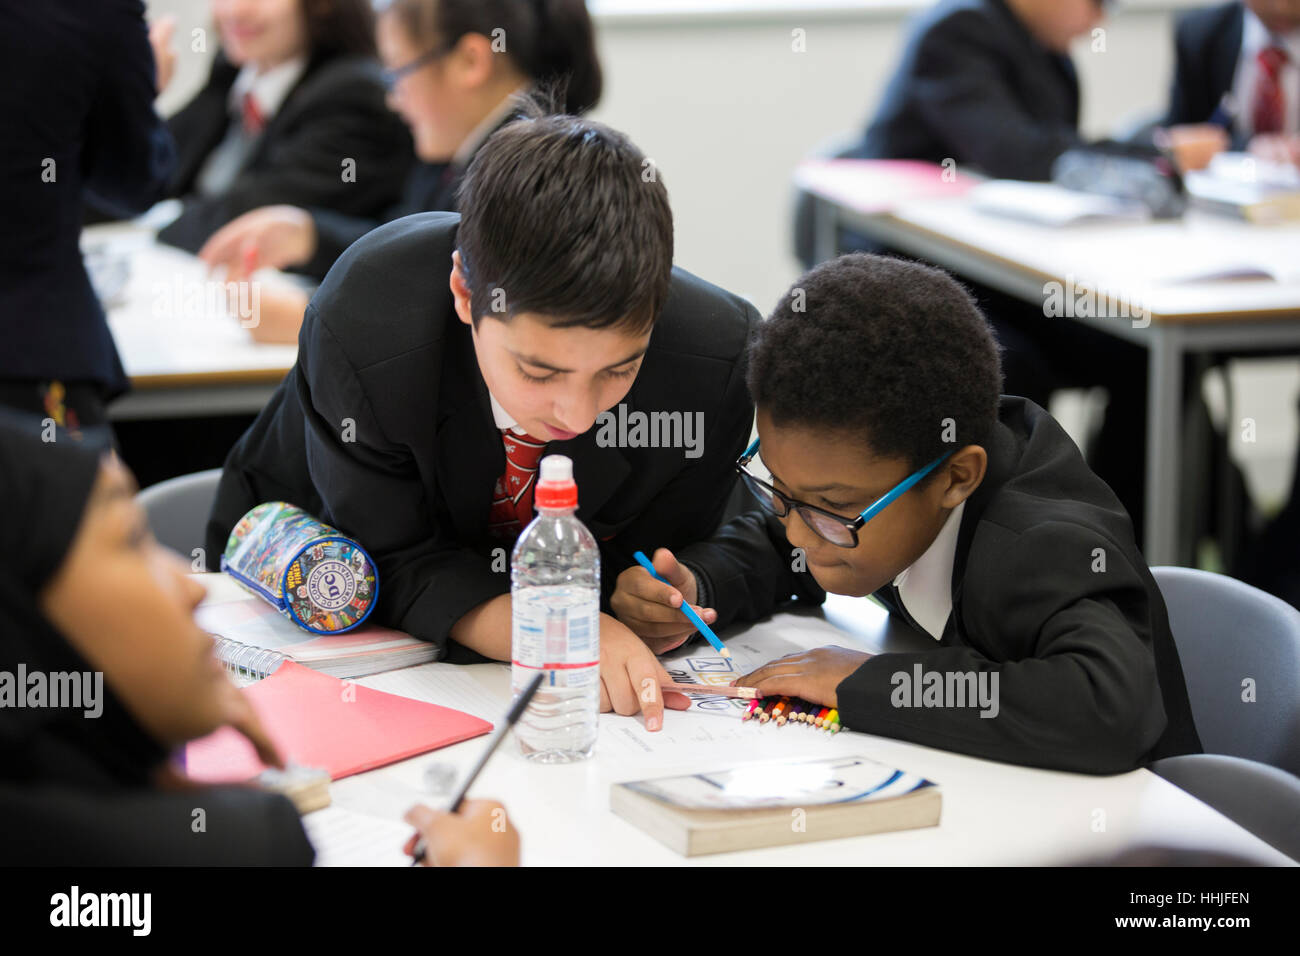 A lesson at the University of Birmingham School. The secondary school was set up by Birmingham University. - Stock Image